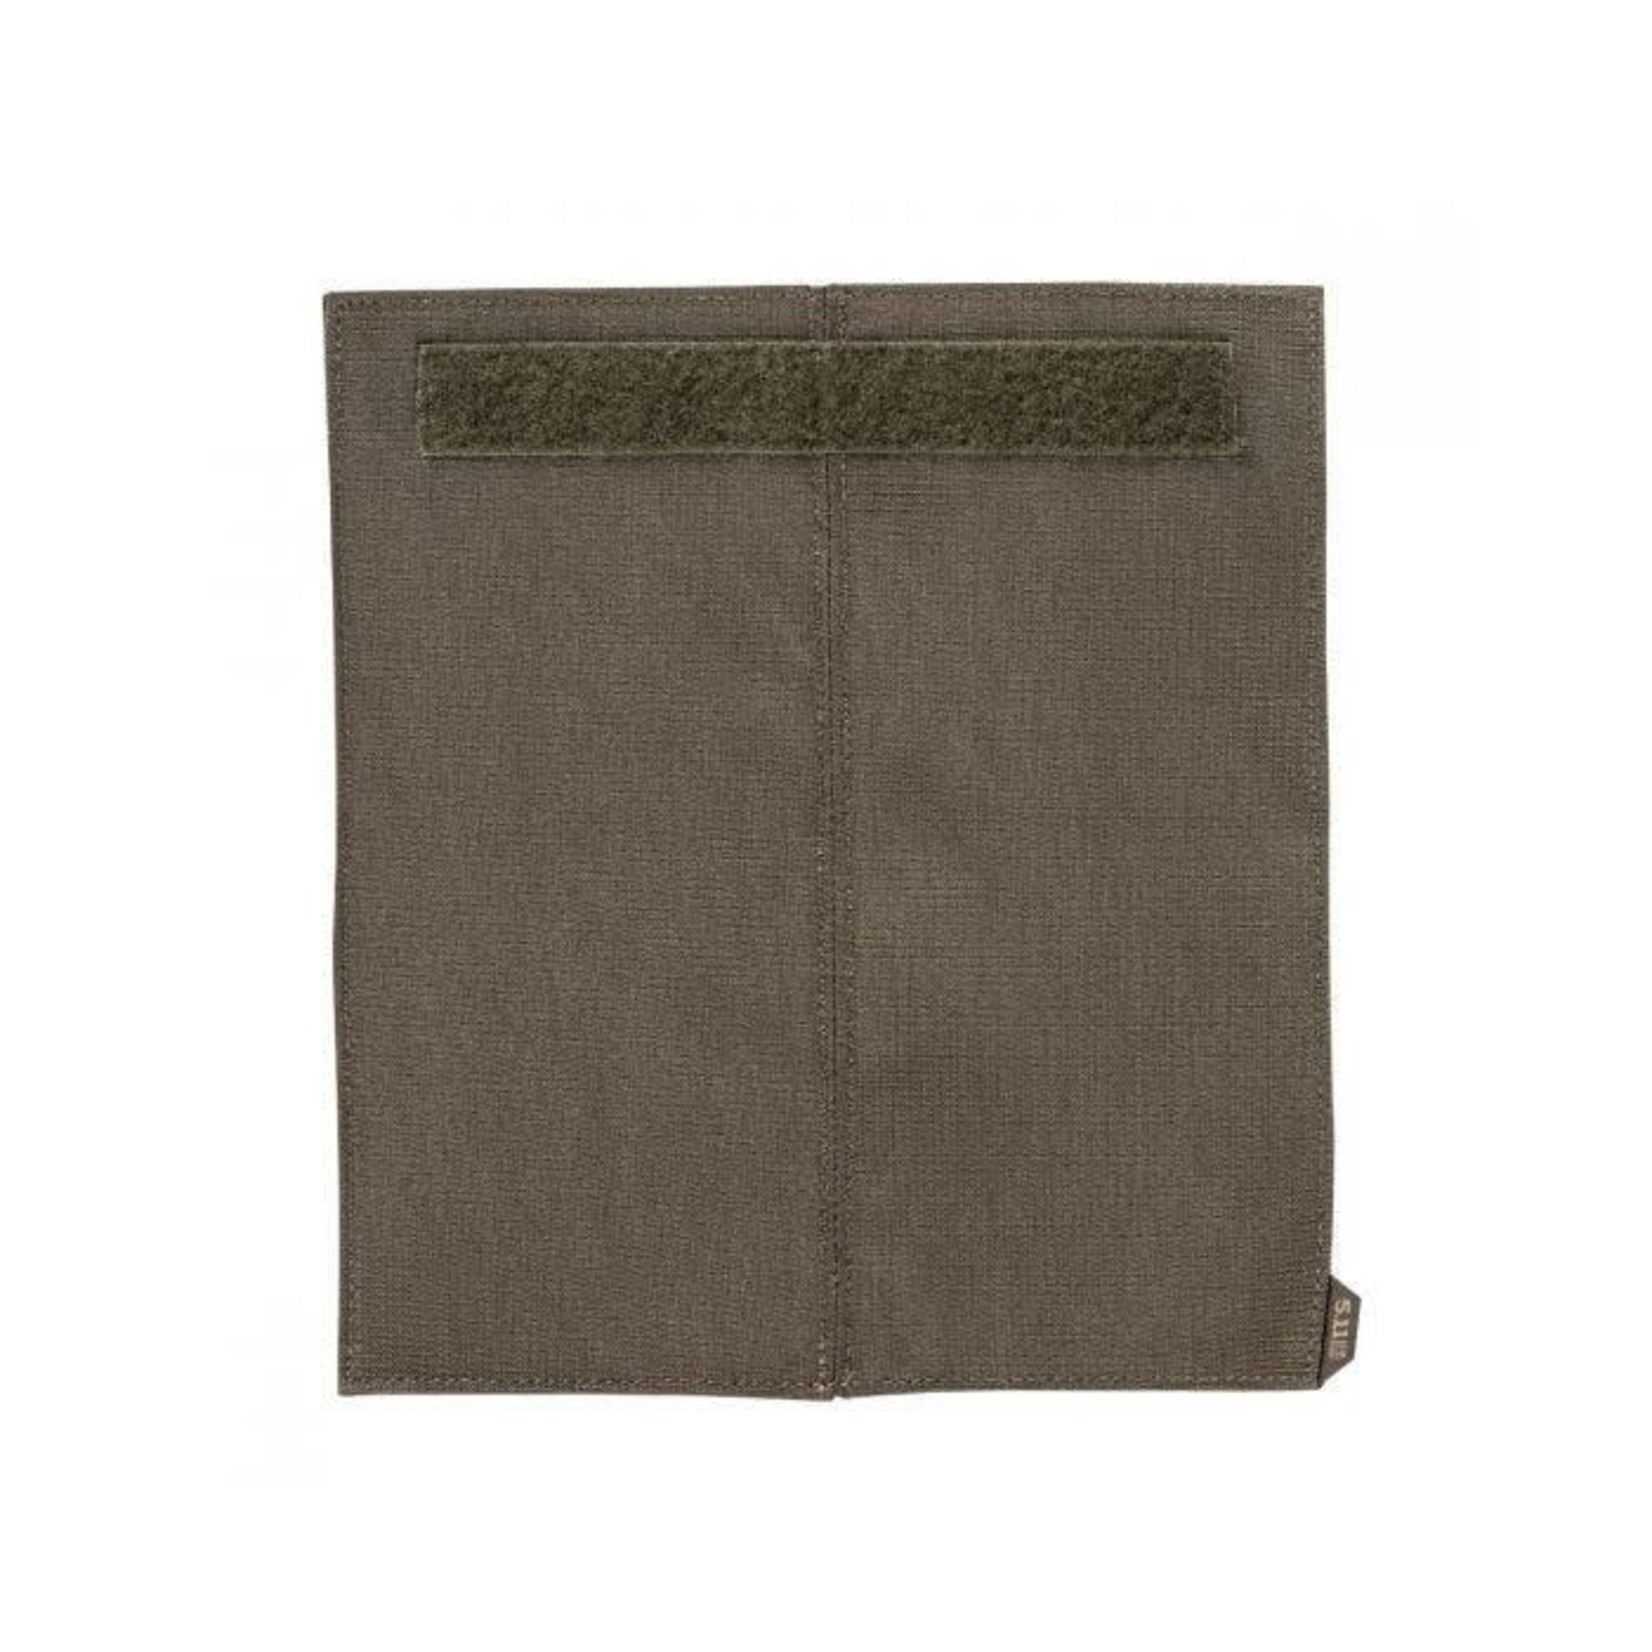 5.11 Tactical 5.11 AMP Covert Panel